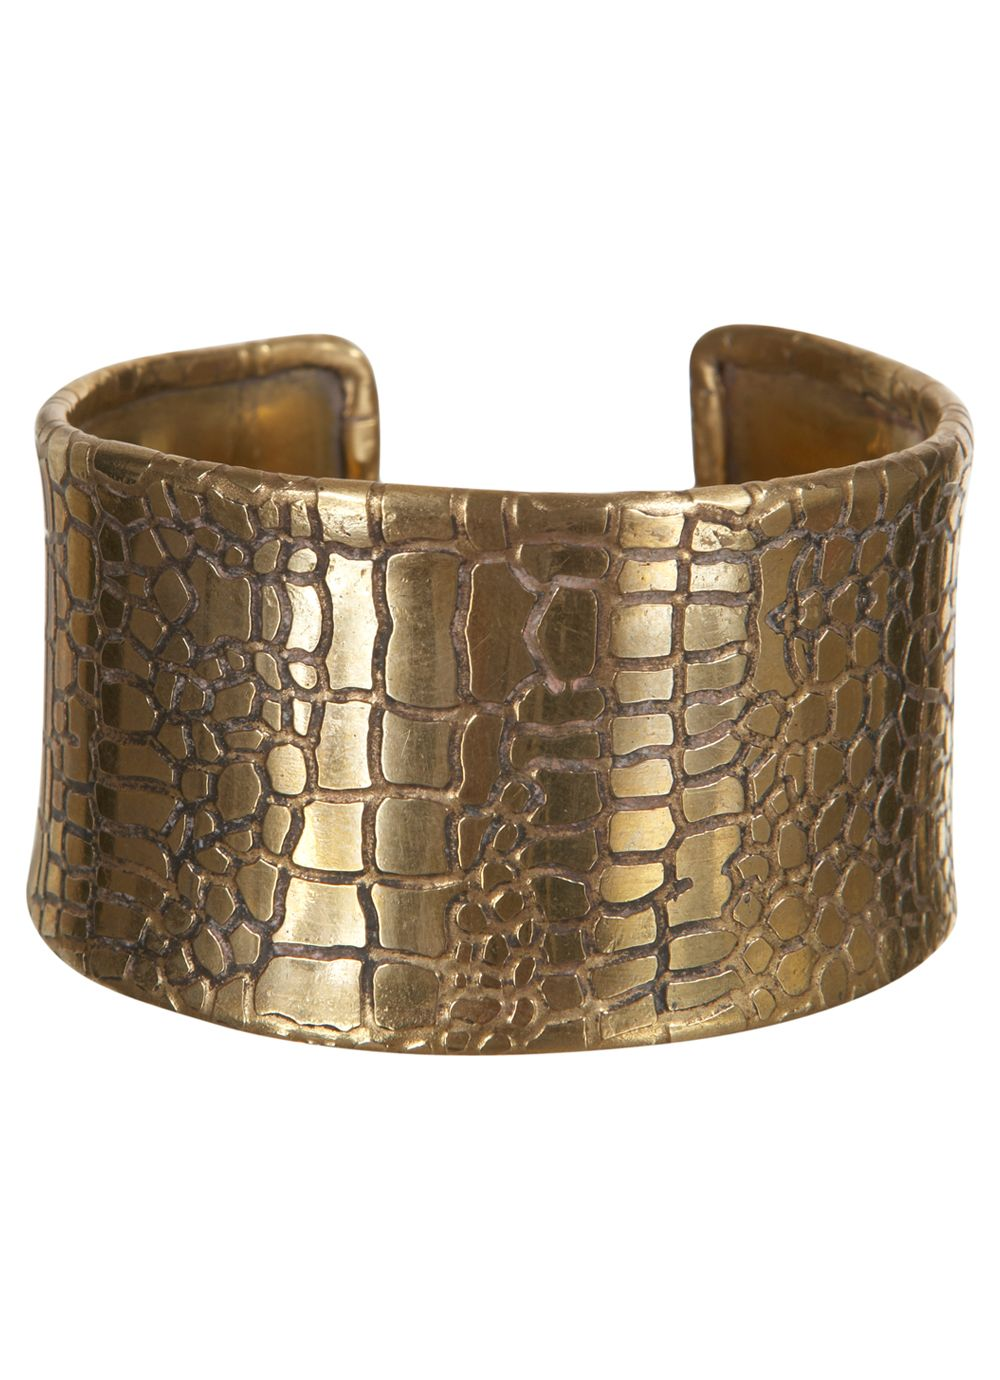 Antique gold snake print cuff